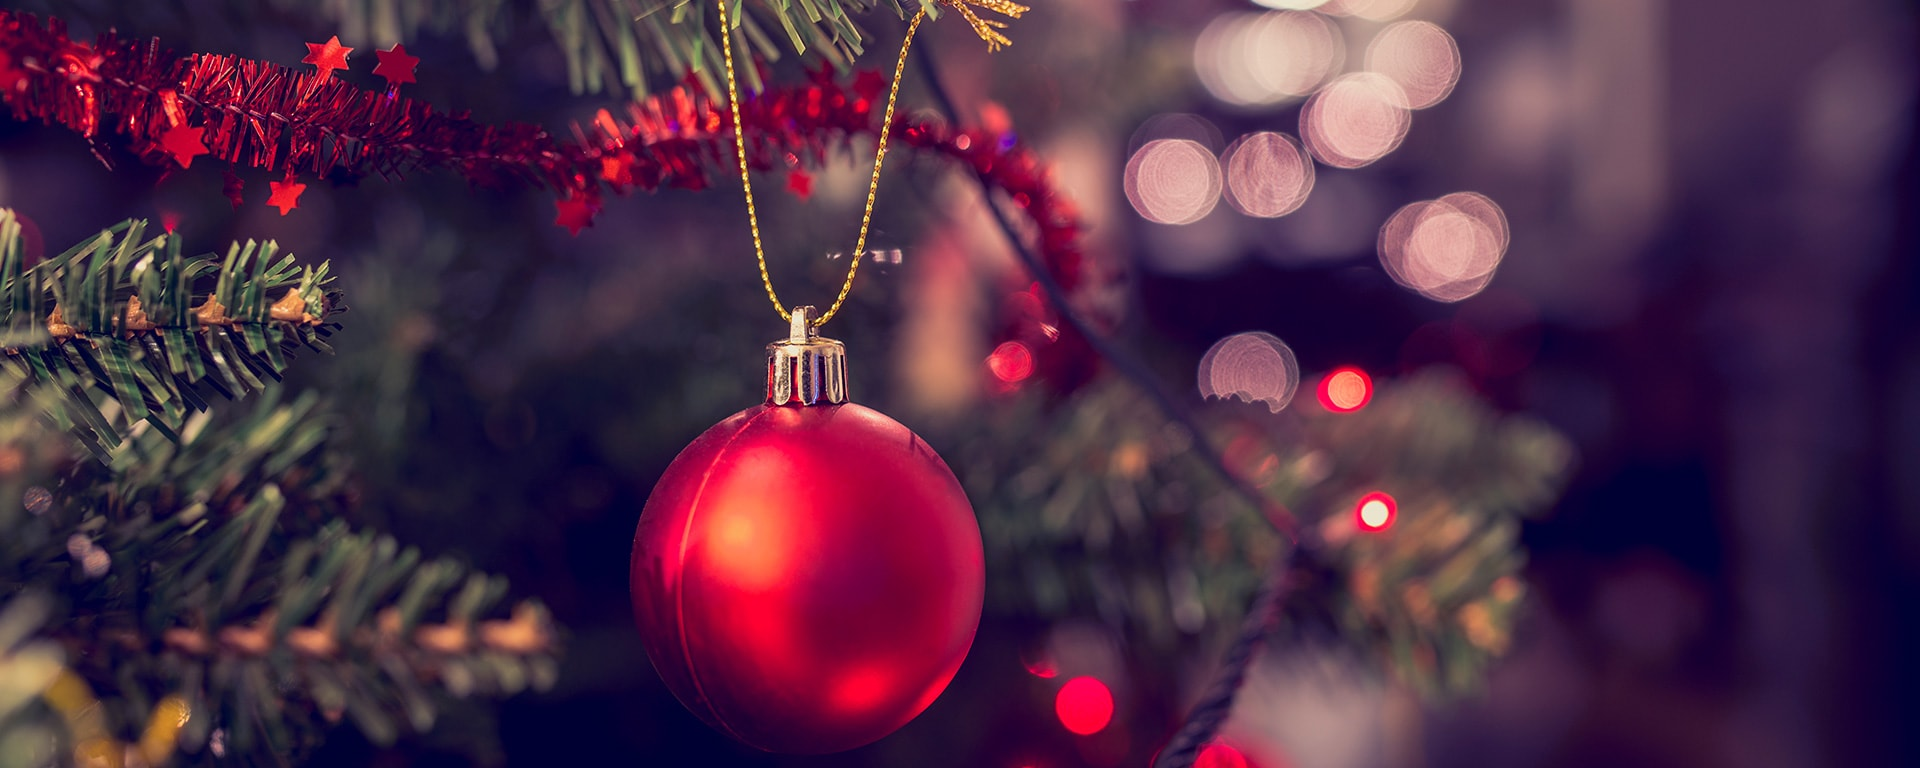 Red Christmas Bauble on Tree